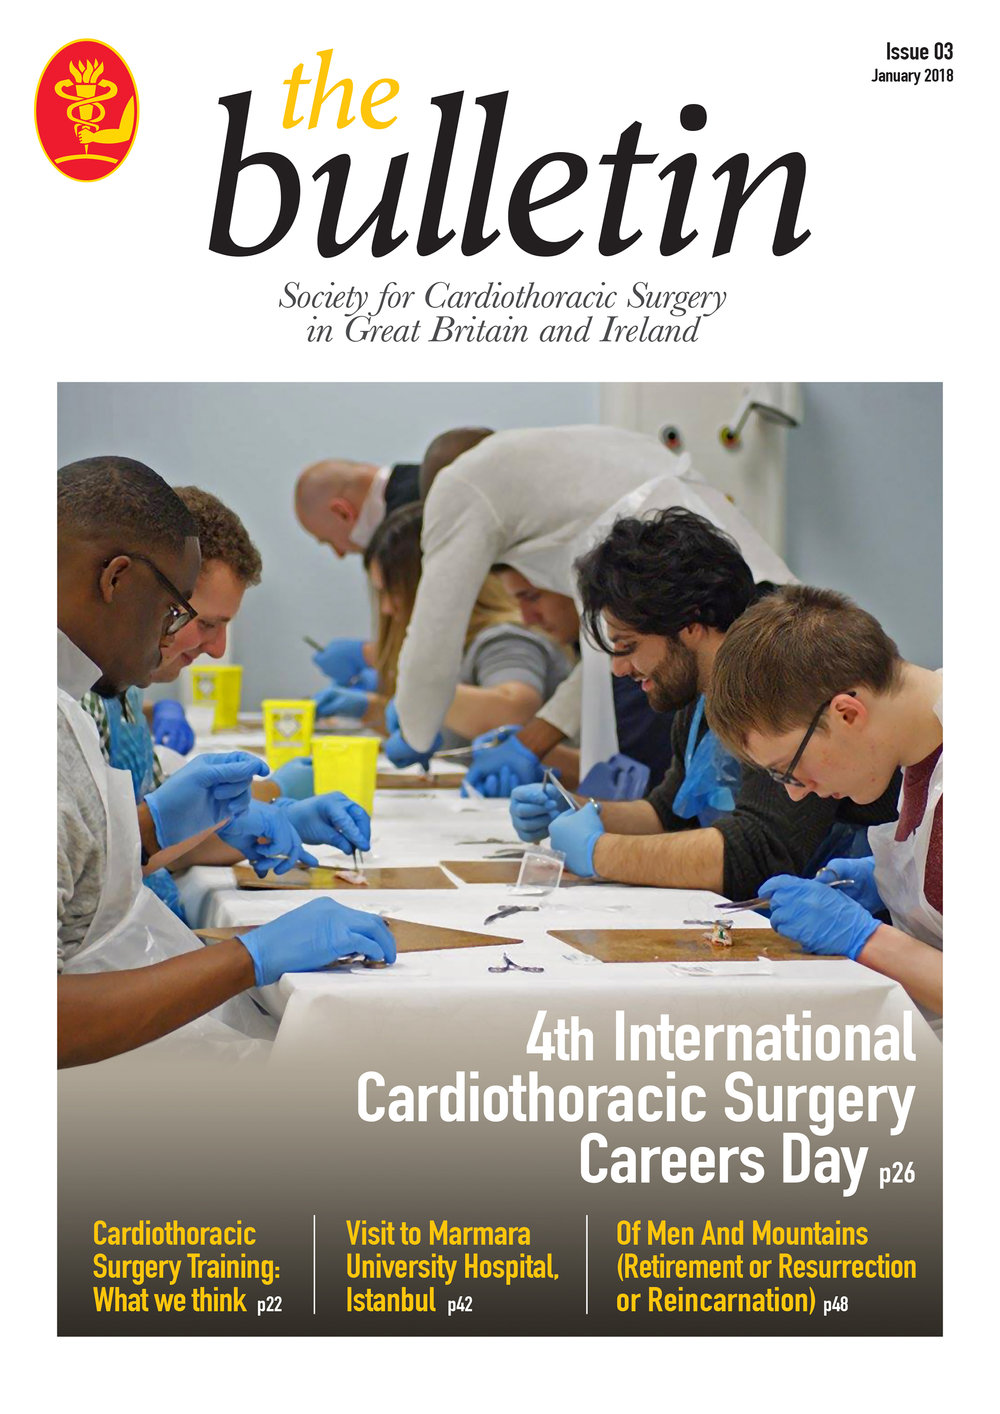 Society for Cardiothoraic Surgery